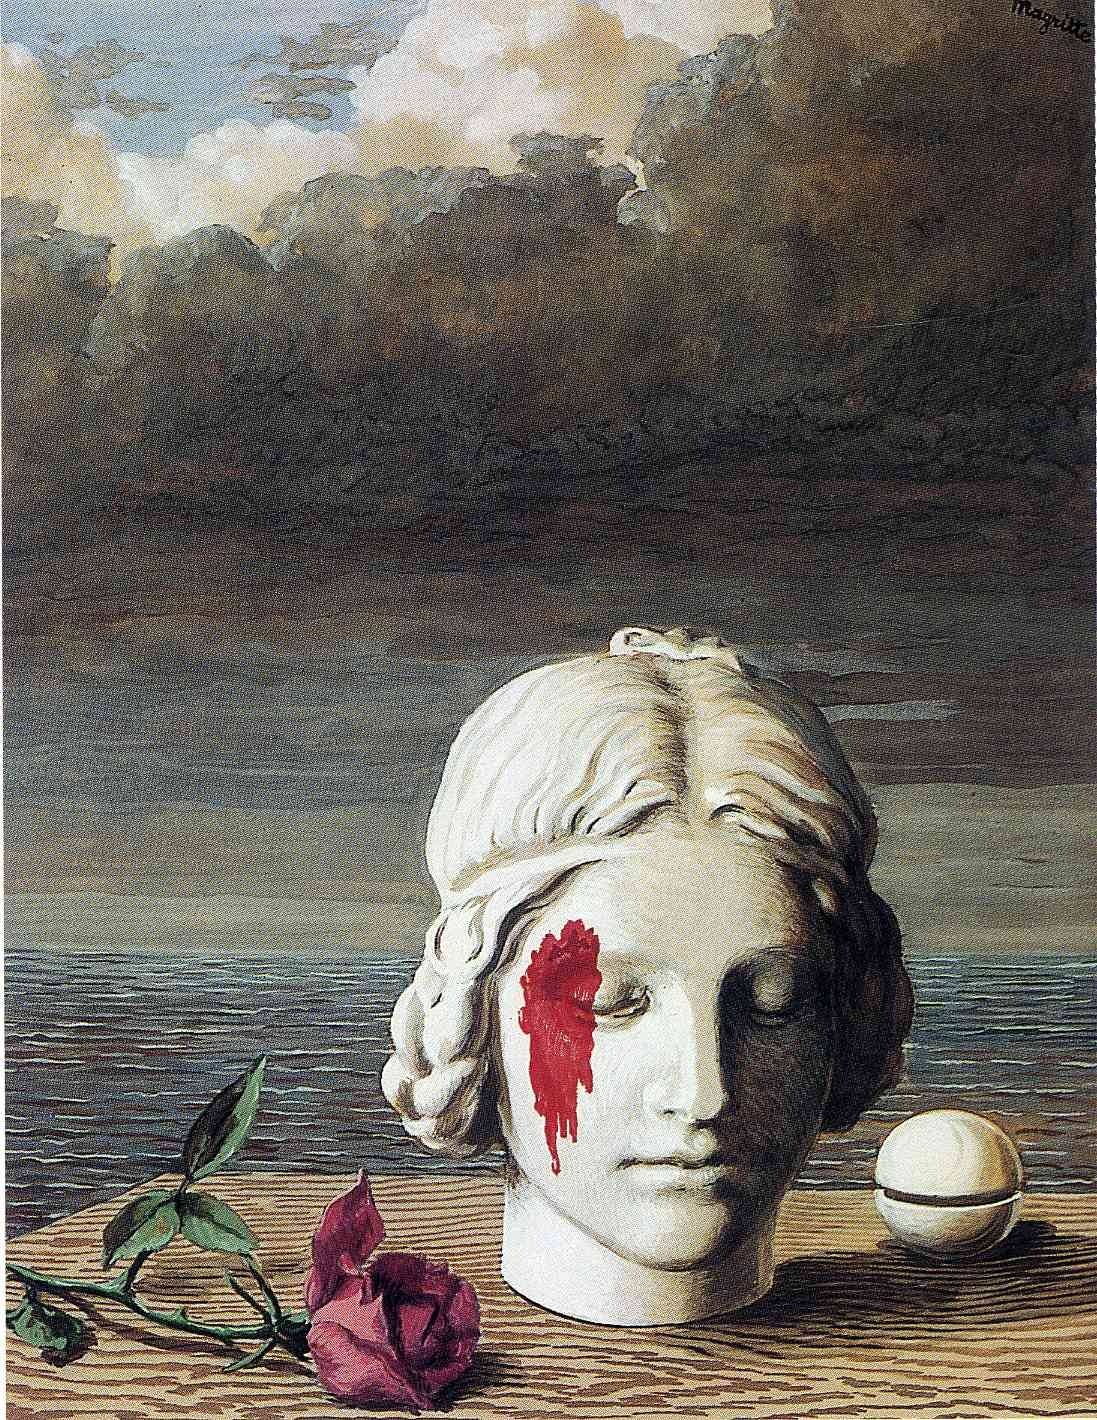 Another painting depicting the same scene, except with ever-so-slightly different placements of the objects. Rene Magritte - Memory, 1948.